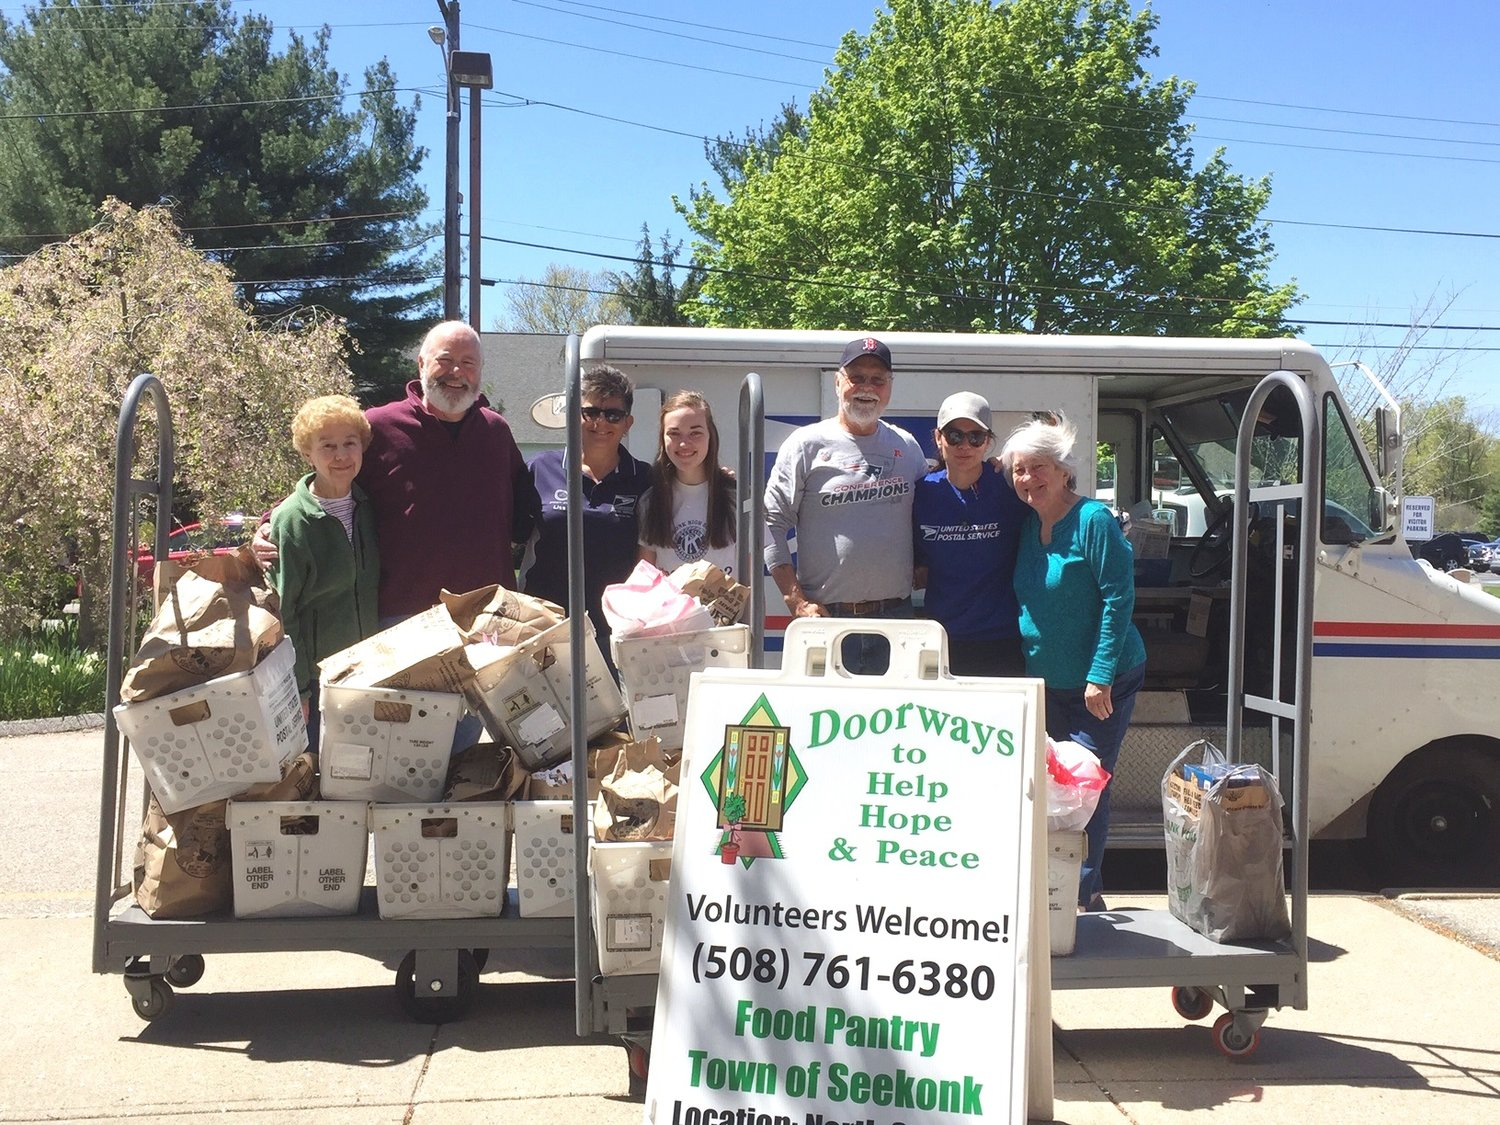 Seekonk Letter Carriers and volunteers from Doorways Food Pantry pose with some of the tons of food donated by postal patrons during the food drive on May 11.